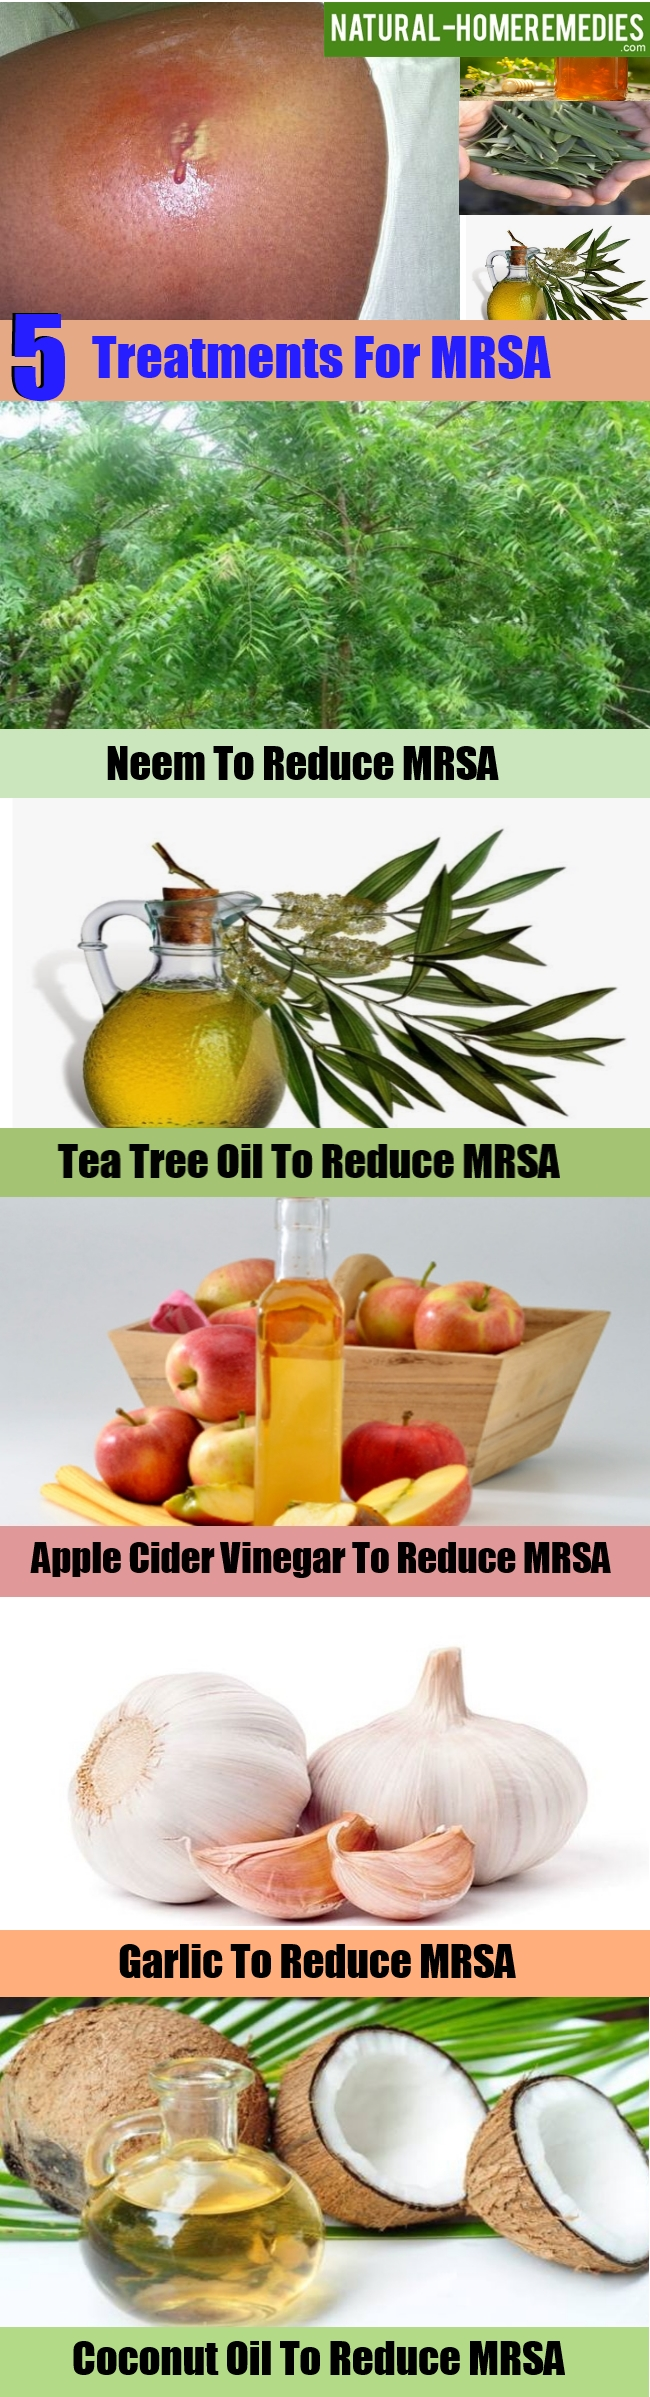 5 Effective Treatments For MRSA – Natural Home Remedies